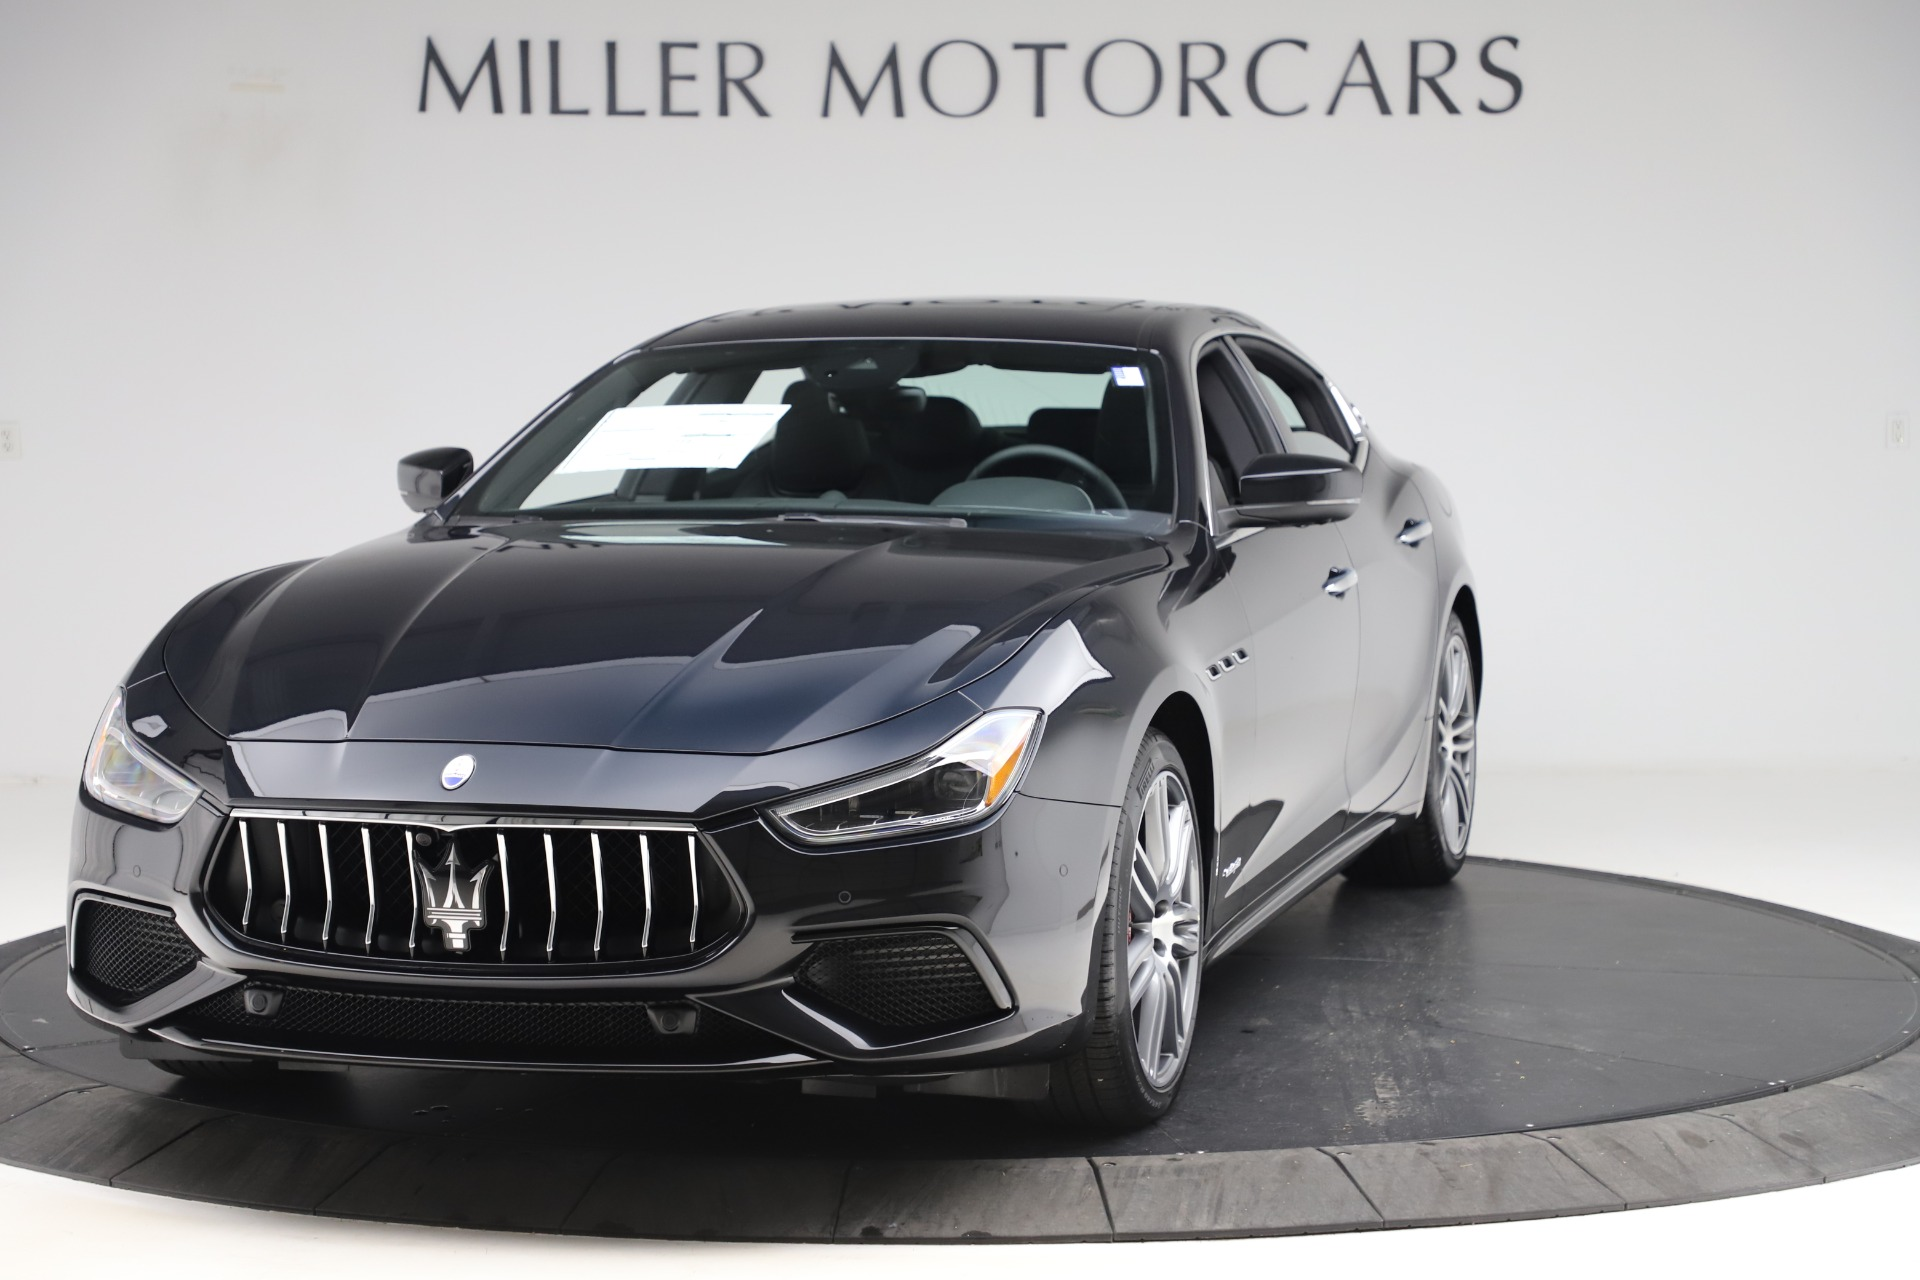 New 2020 Maserati Ghibli S Q4 GranSport for sale $90,285 at Bentley Greenwich in Greenwich CT 06830 1